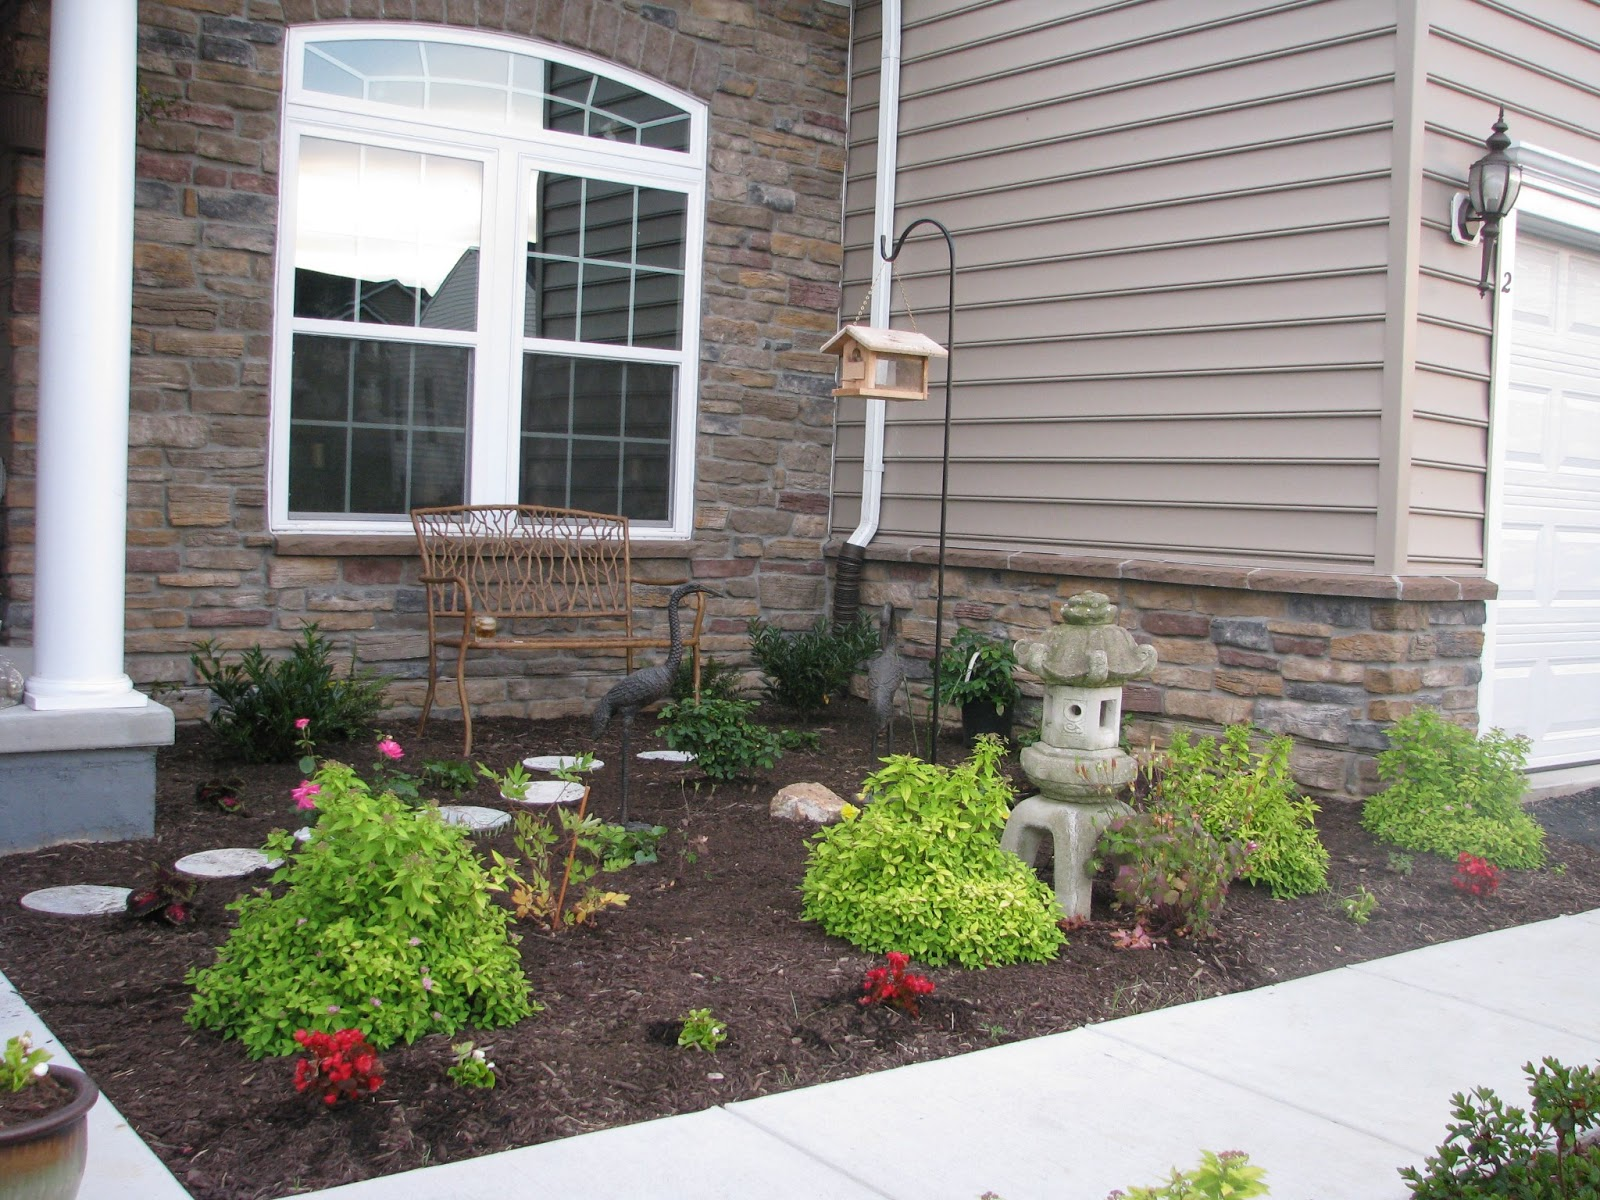 Landscaping Bushes For Front Of House Displaying 18 Gt Images For